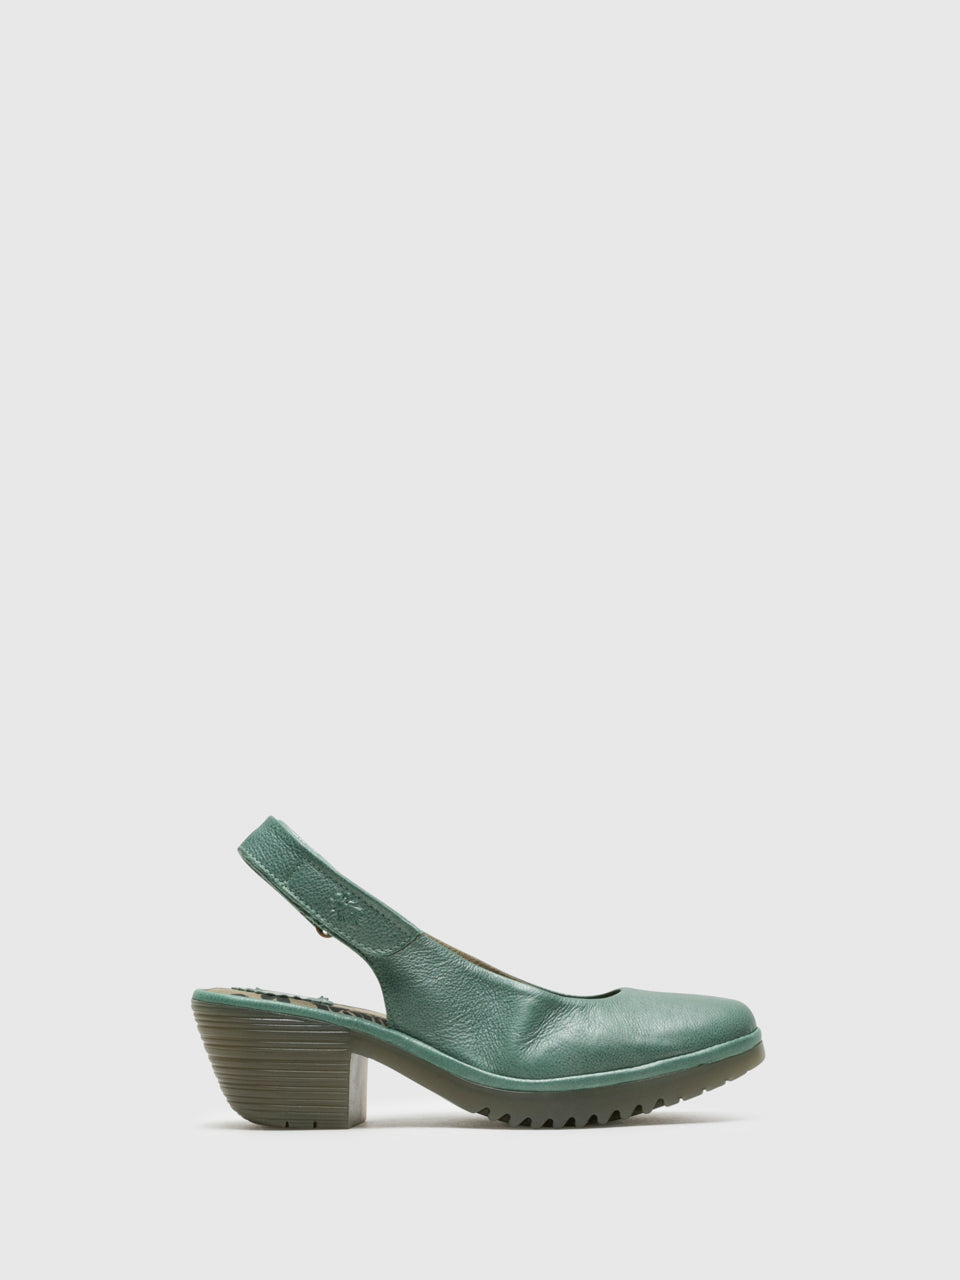 Fly London Green Sling-Back Pumps Shoes